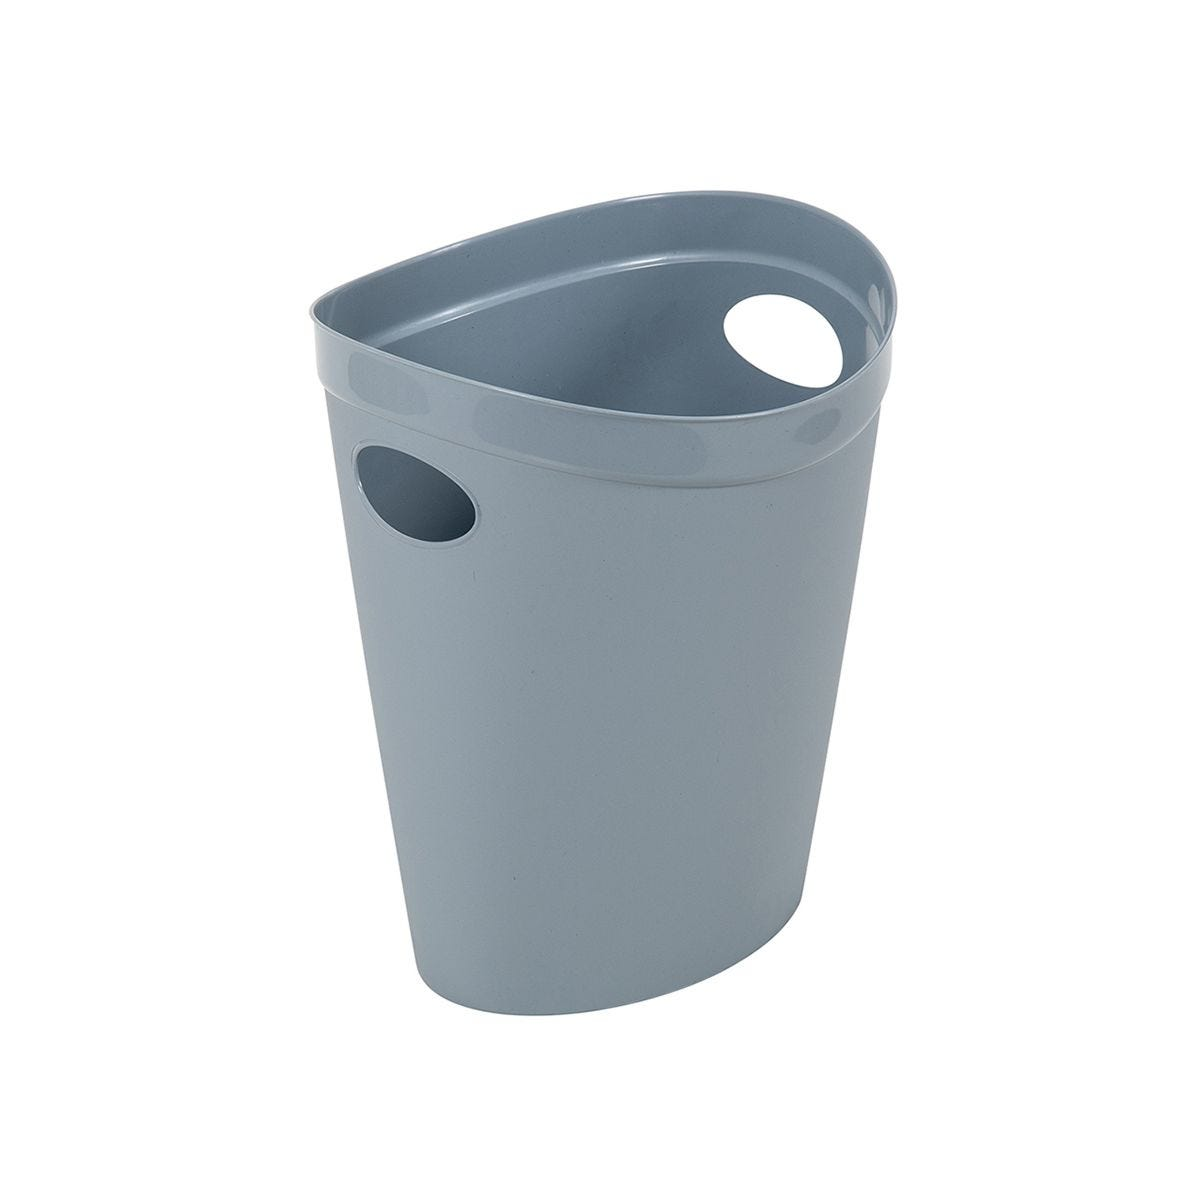 Addis 100% Recycled Eco Waste Paper Bin - Grey